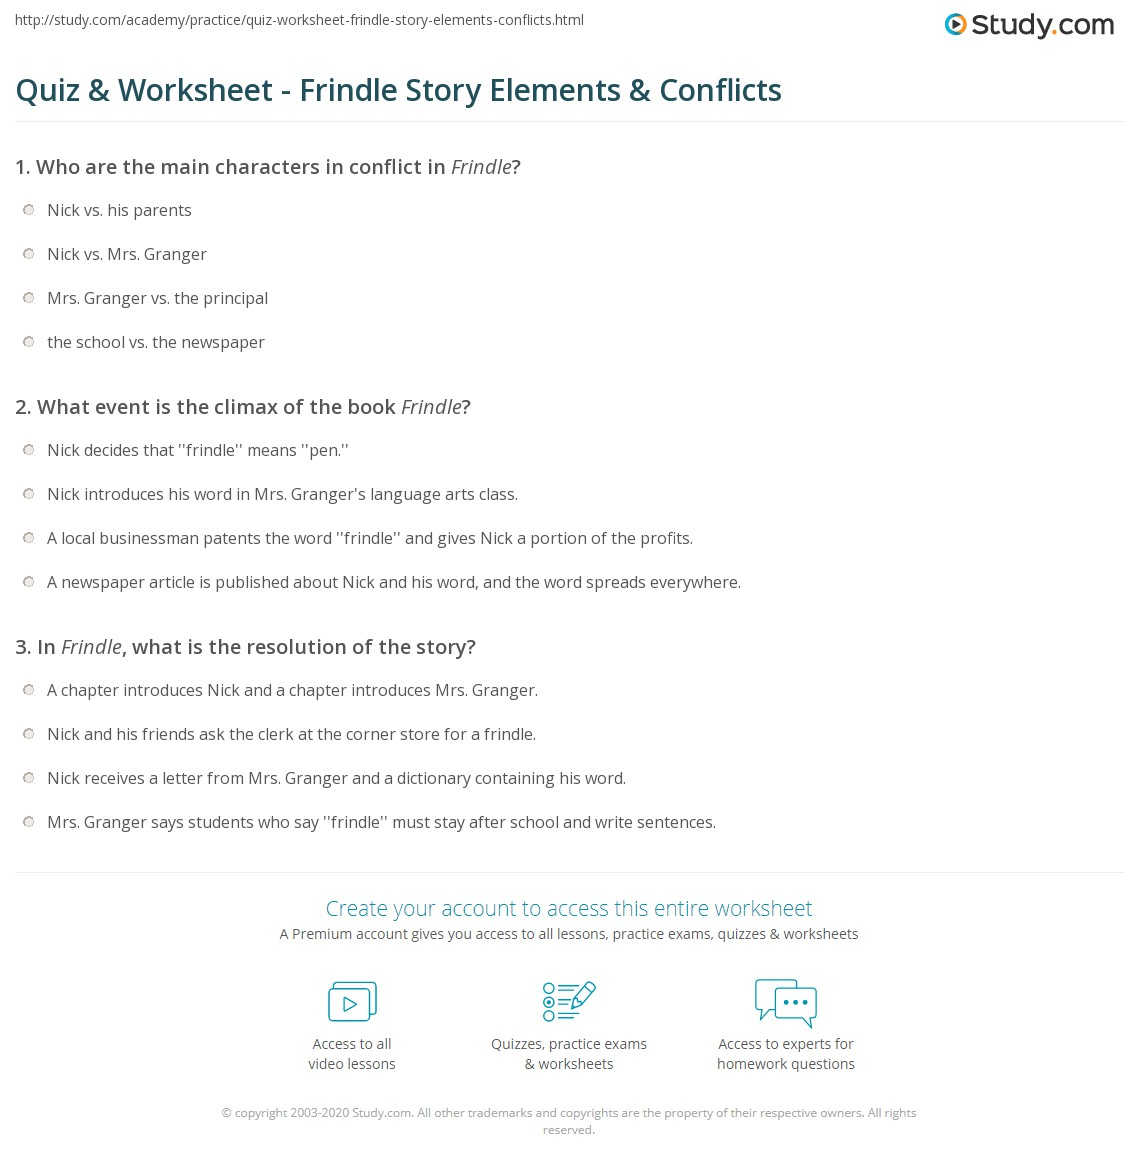 Quiz worksheet frindle story elements conflicts study what event is the climax of the book frindle fandeluxe Image collections